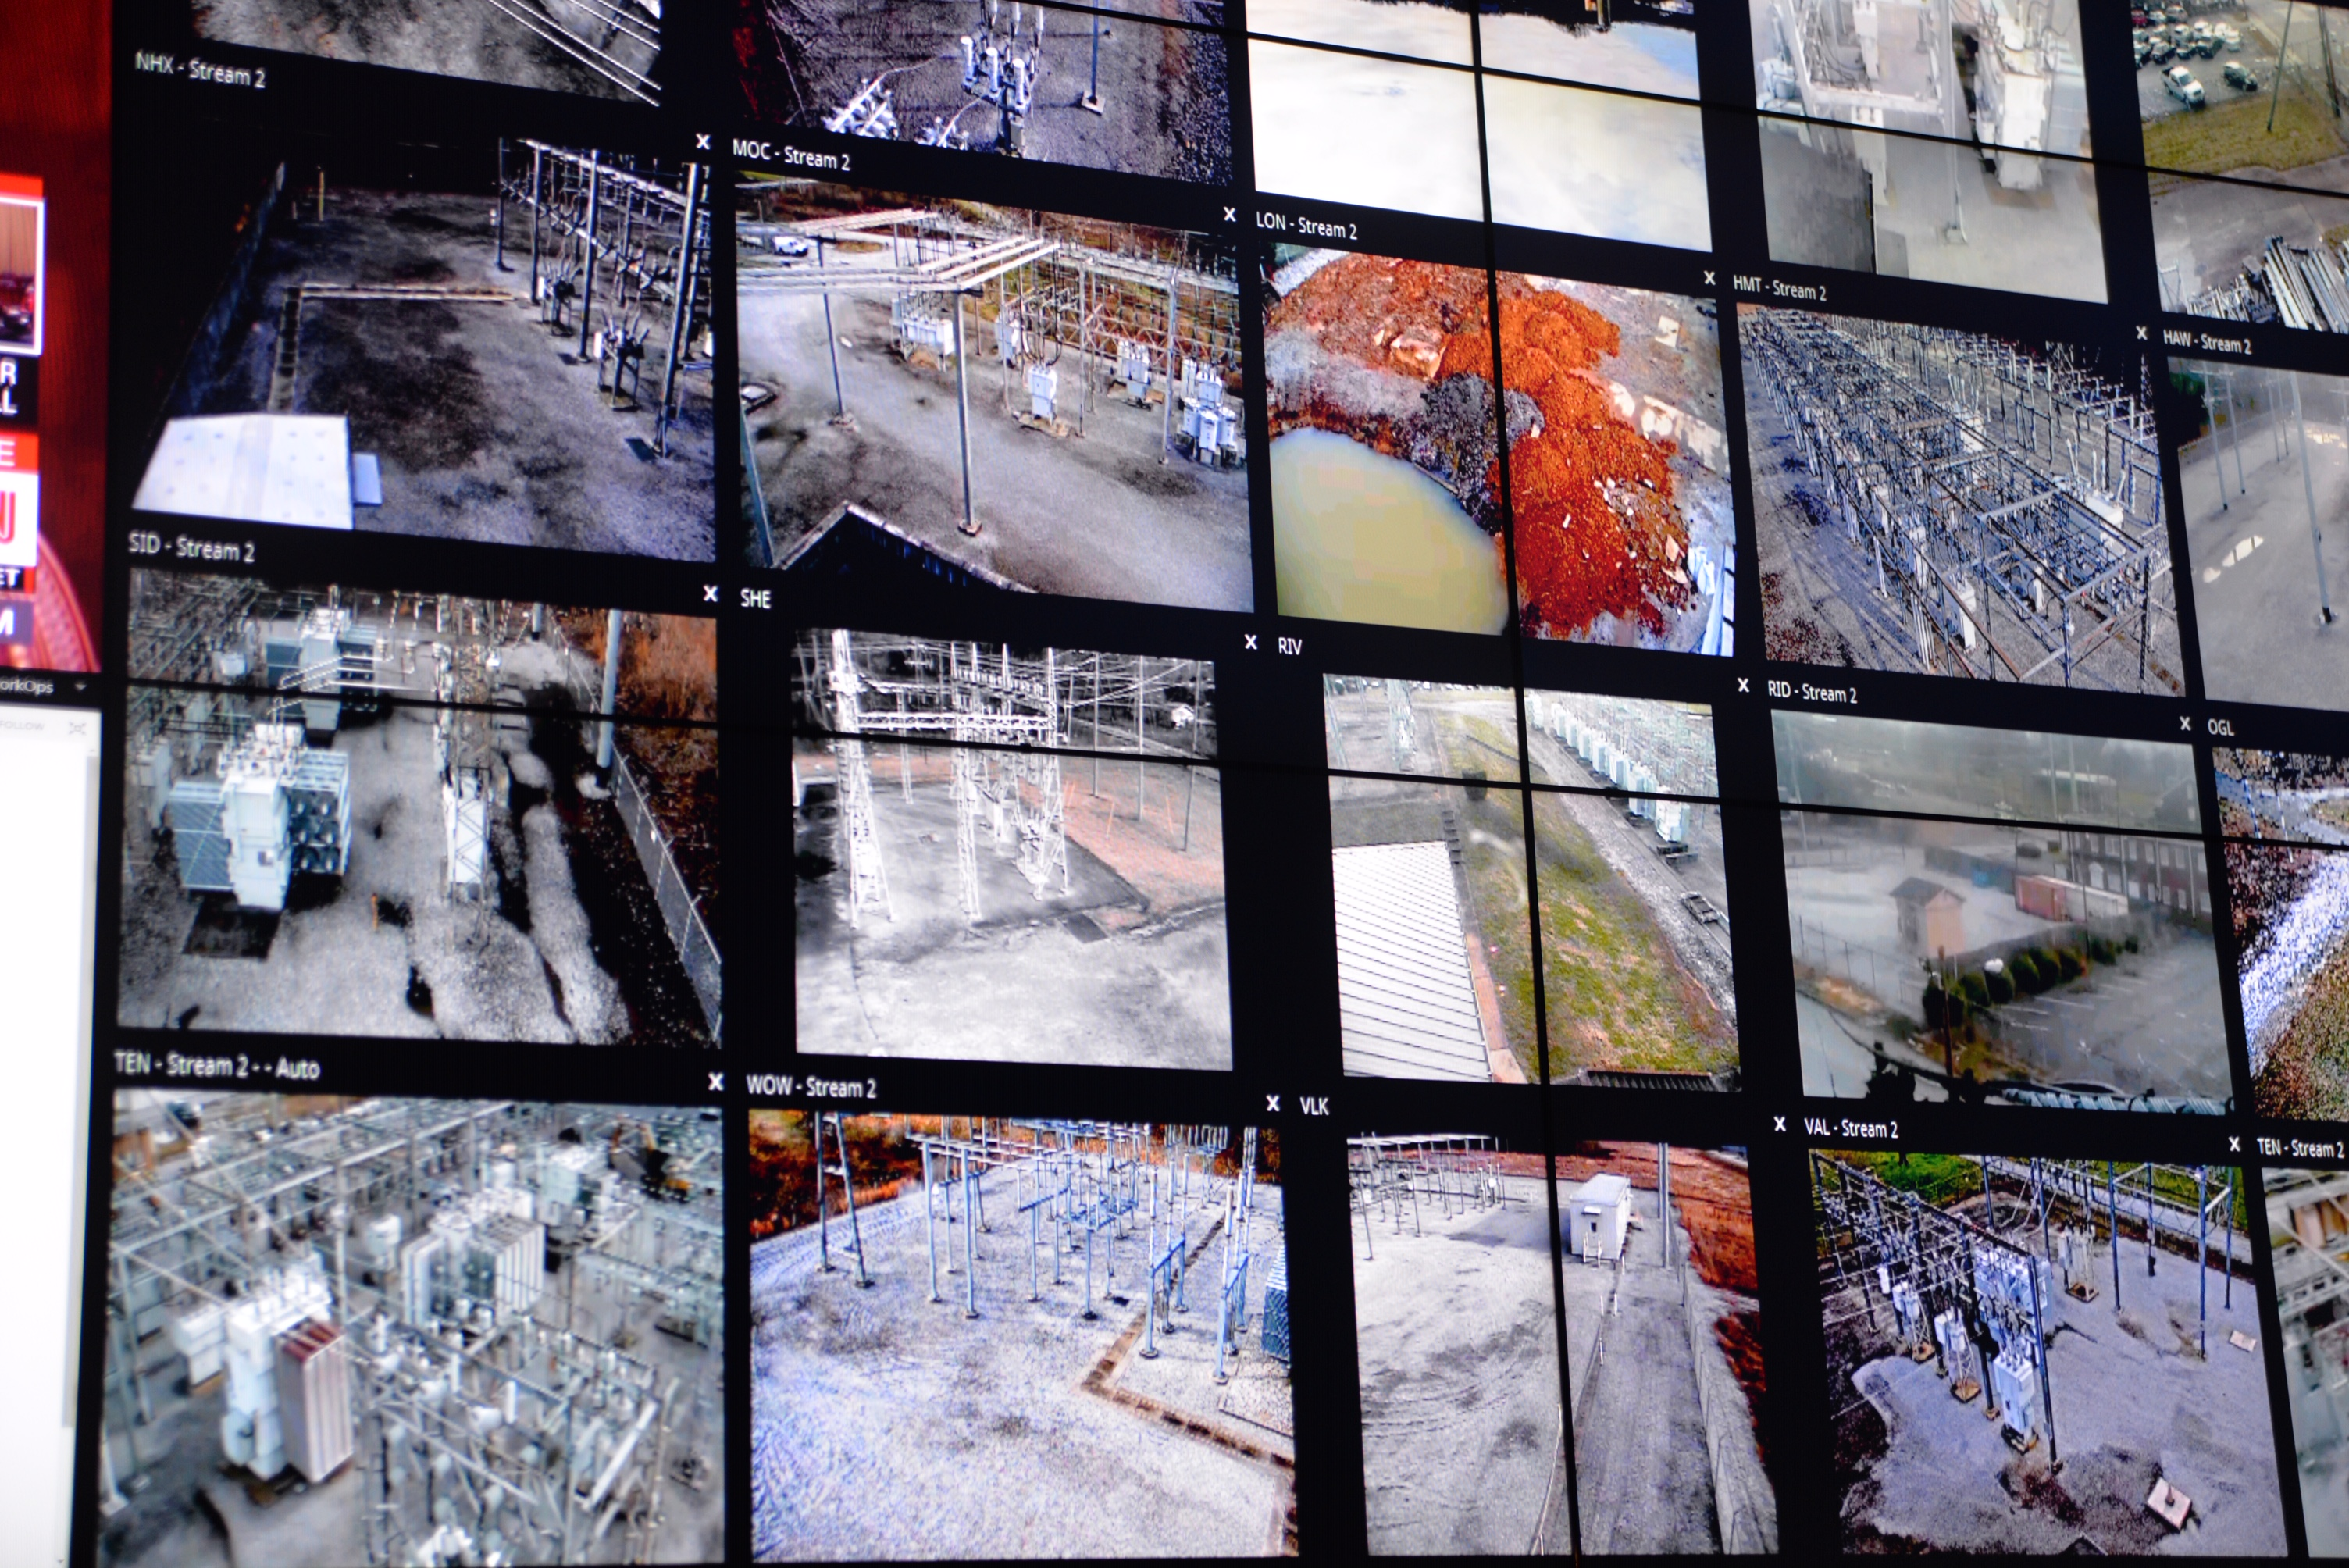 The EPB Control Center monitors the company's assets such as substations and buildings.